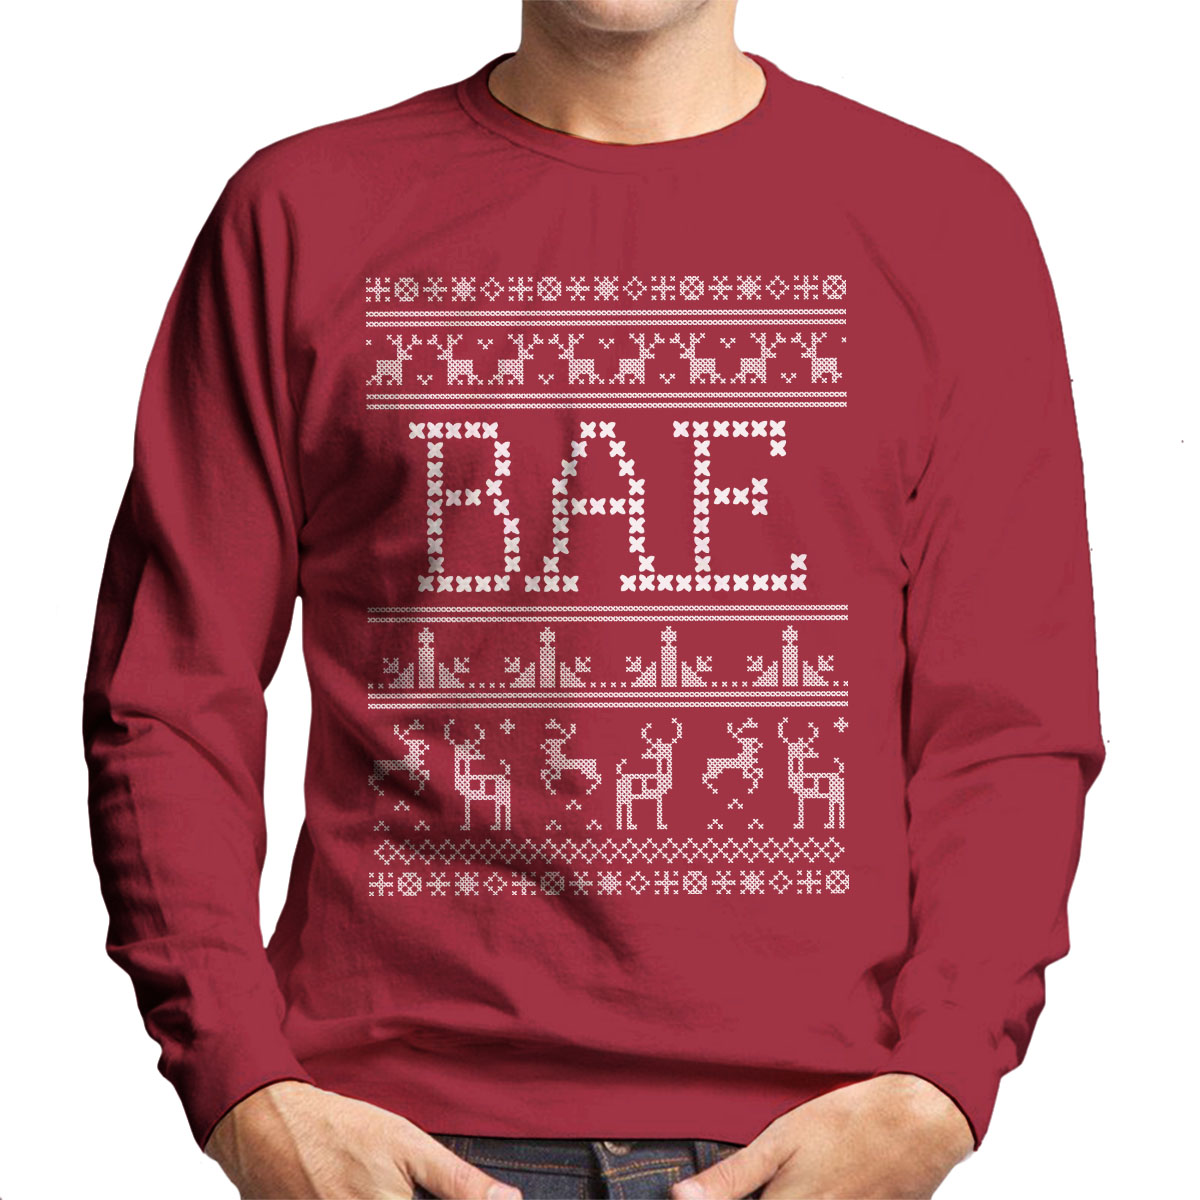 Bae christmas jumper knit pattern mens sweatshirt ebay bae christmas jumper knit pattern men 039 s bankloansurffo Image collections